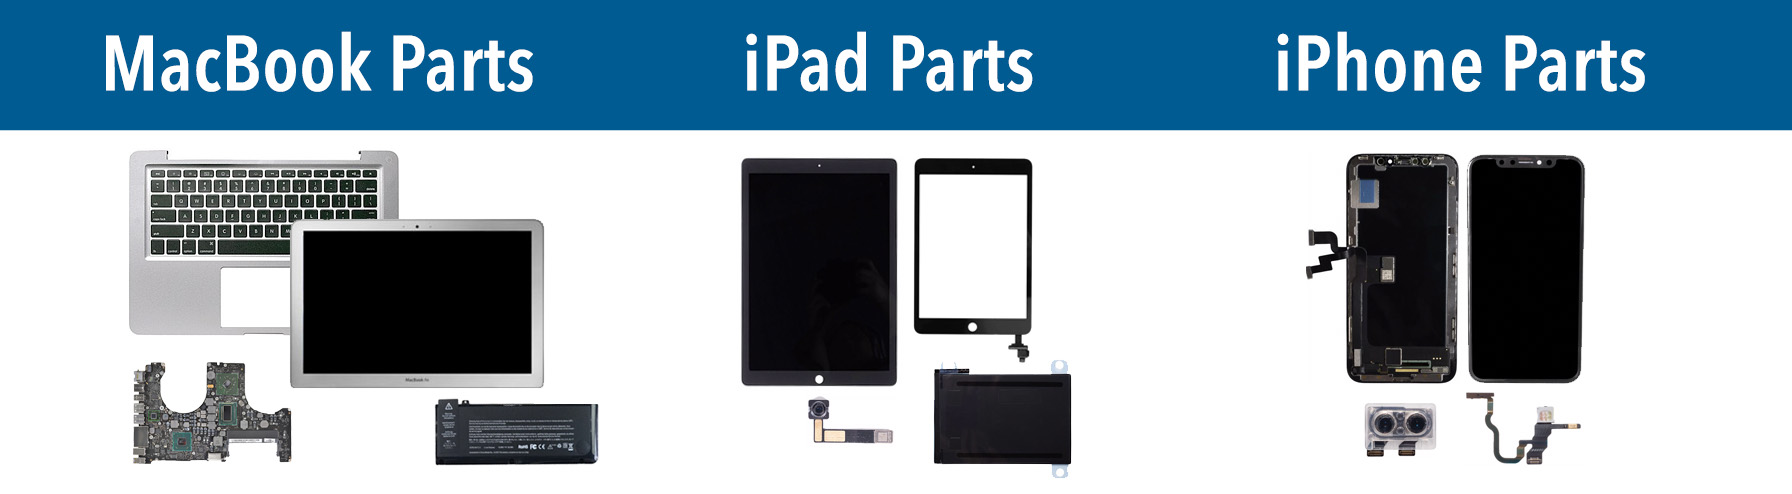 Macbook, iPad, iPhone Parts